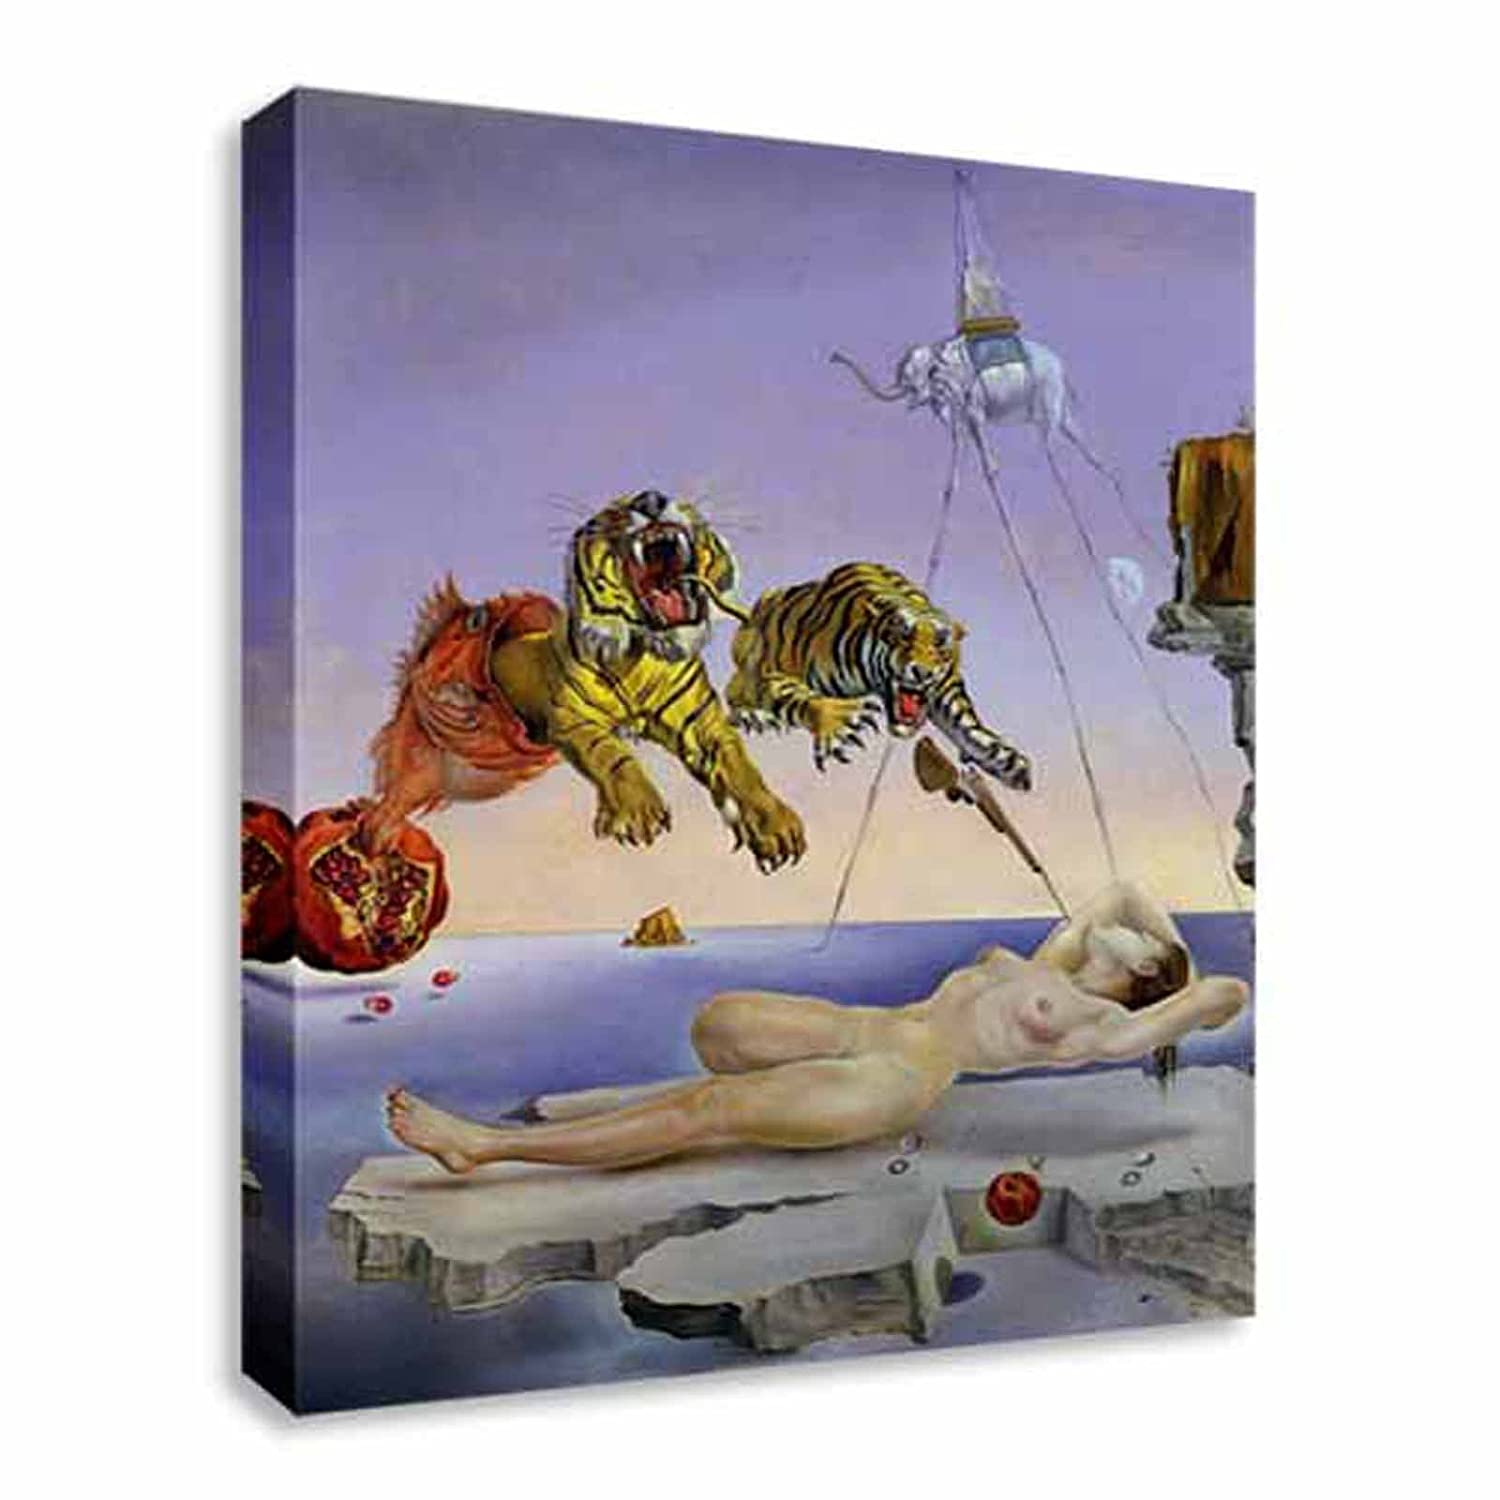 Salvador dali tigers canvas art cheap print wall art †large 12x16 inches amazon co uk kitchen home